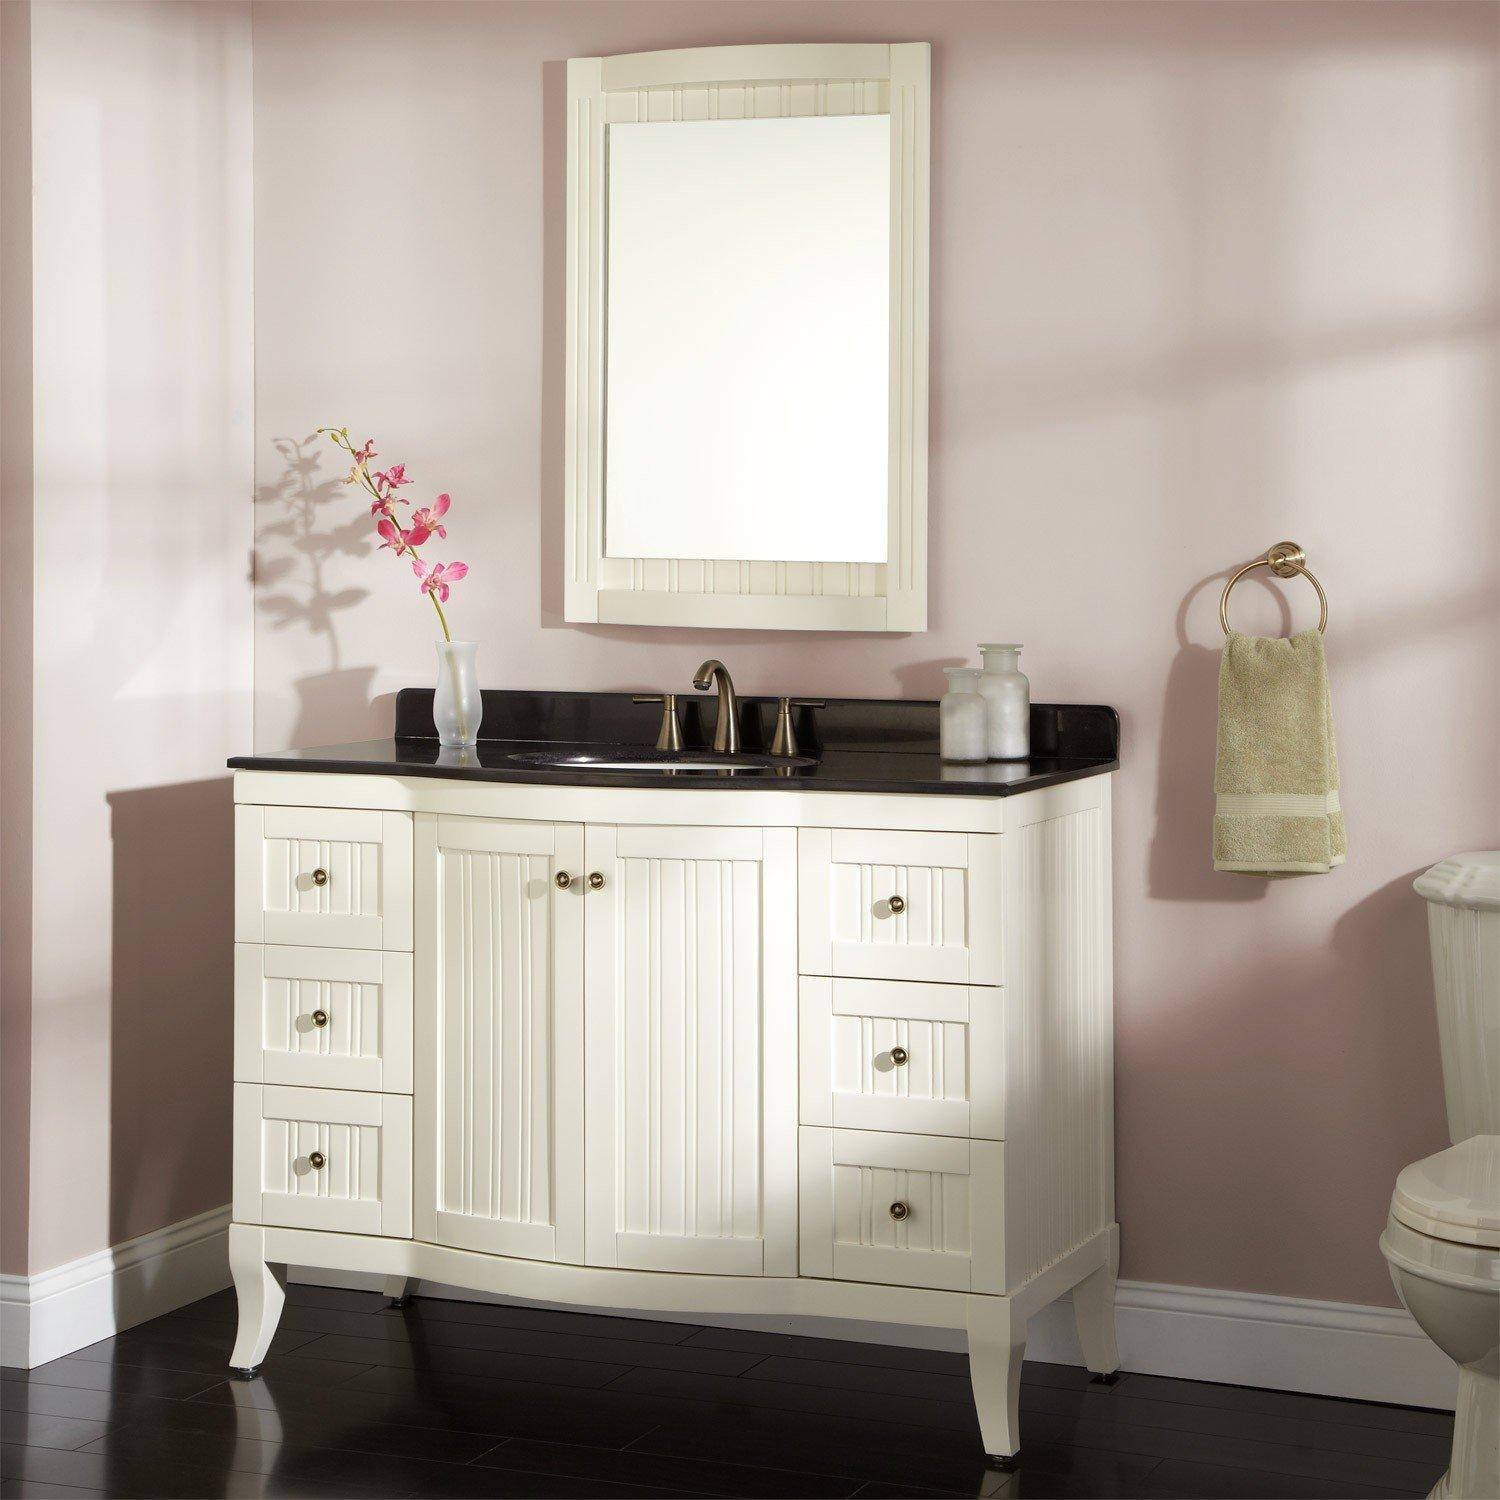 Bathroom : Beautiful Bathroom Vanity Mirrors Decorative Mirrors Pertaining To Decorative Mirrors For Bathroom Vanity (View 11 of 20)